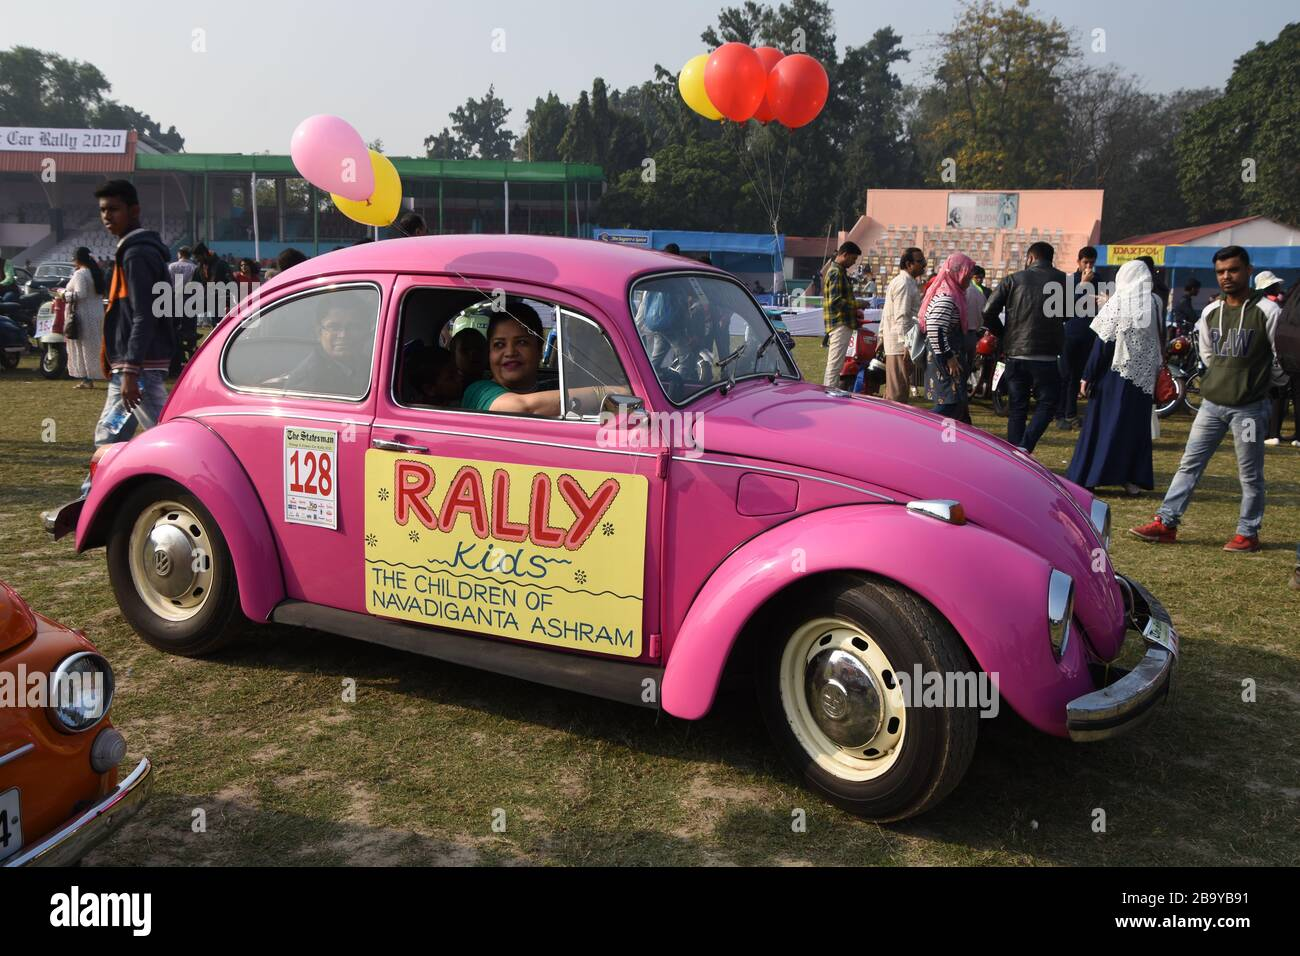 Volkswagen 1300 Beetle High Resolution Stock Photography And Images Alamy